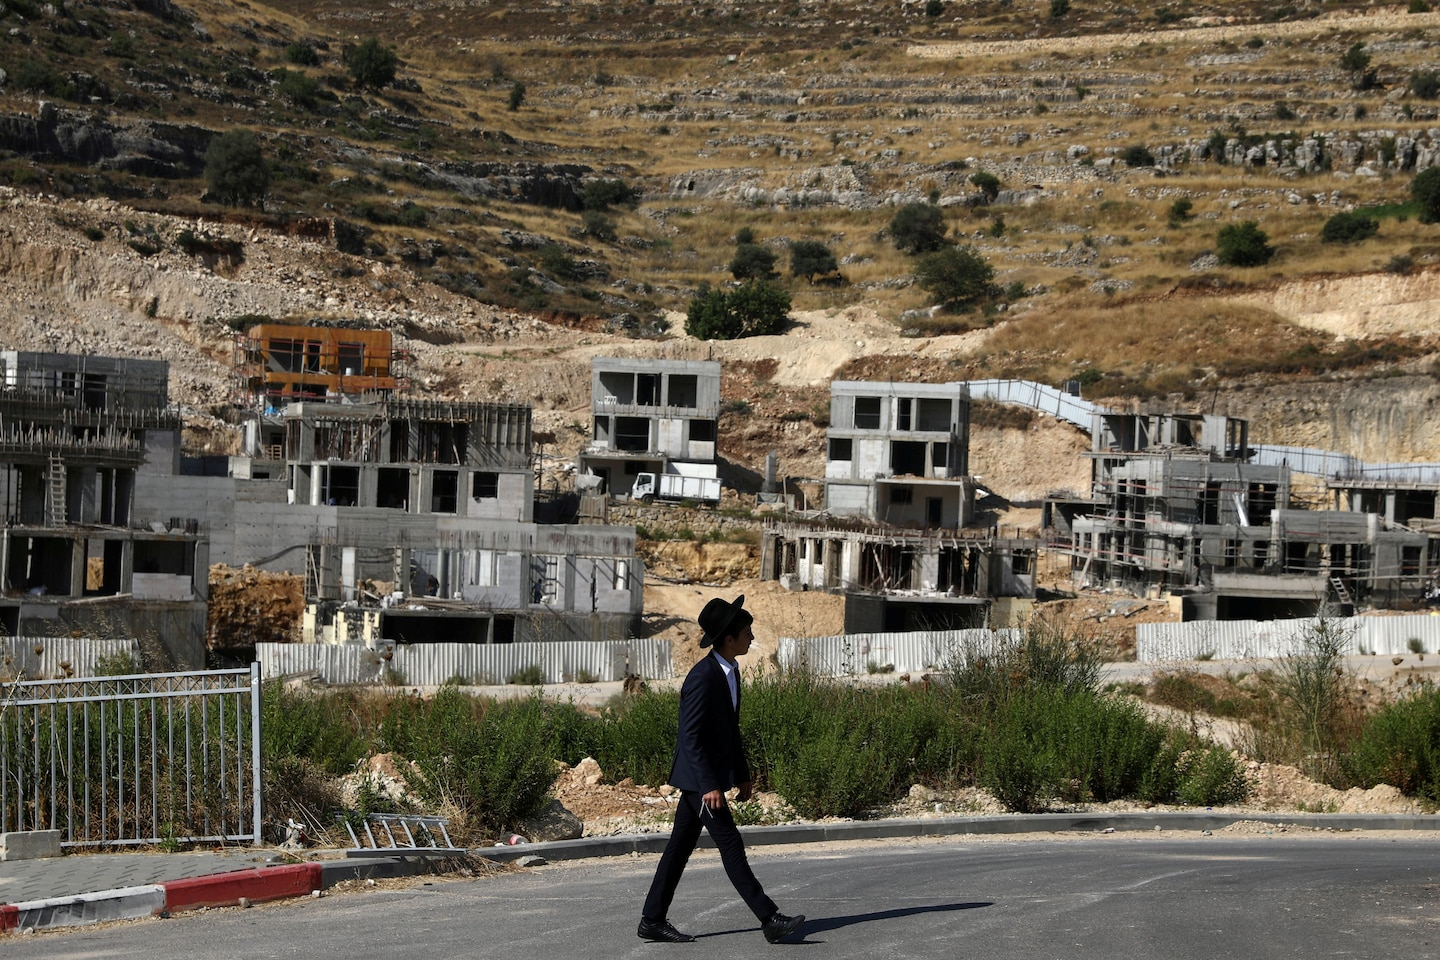 A Jewish settler walks past Israeli settlement construction sites in the Israeli-occupied West Bank near Jerusalem on June 30. (Ammar Awad/Reuters)